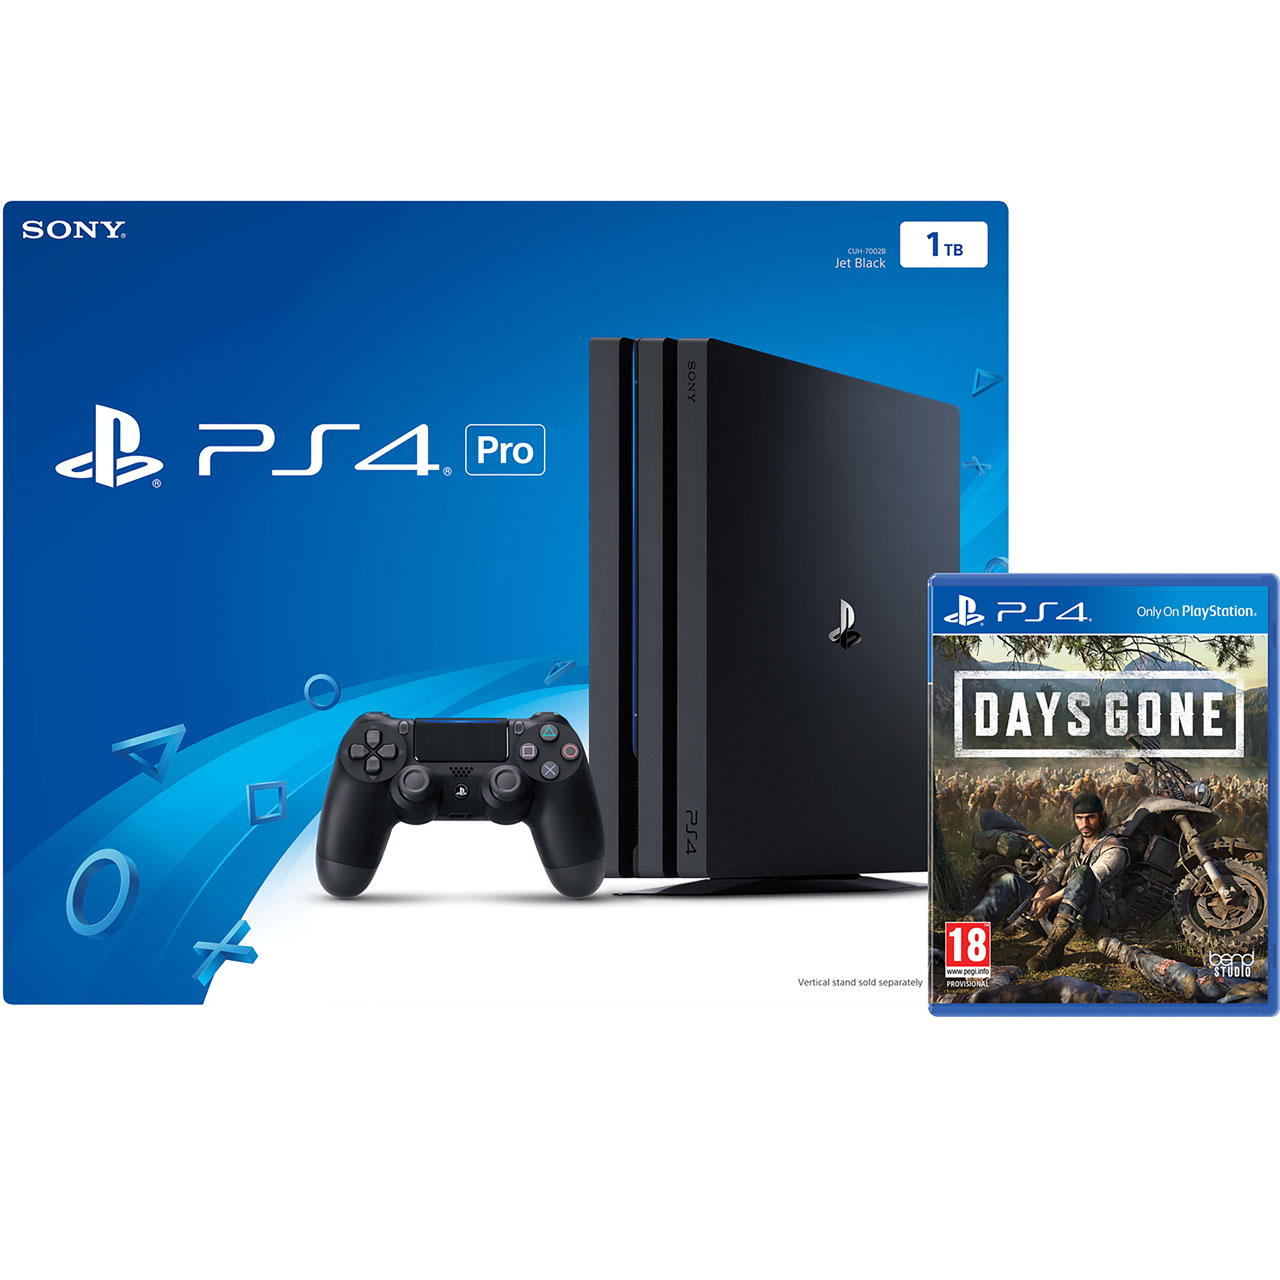 PlayStation 4 Pro 1TB with Days Gone (Disc) - Black